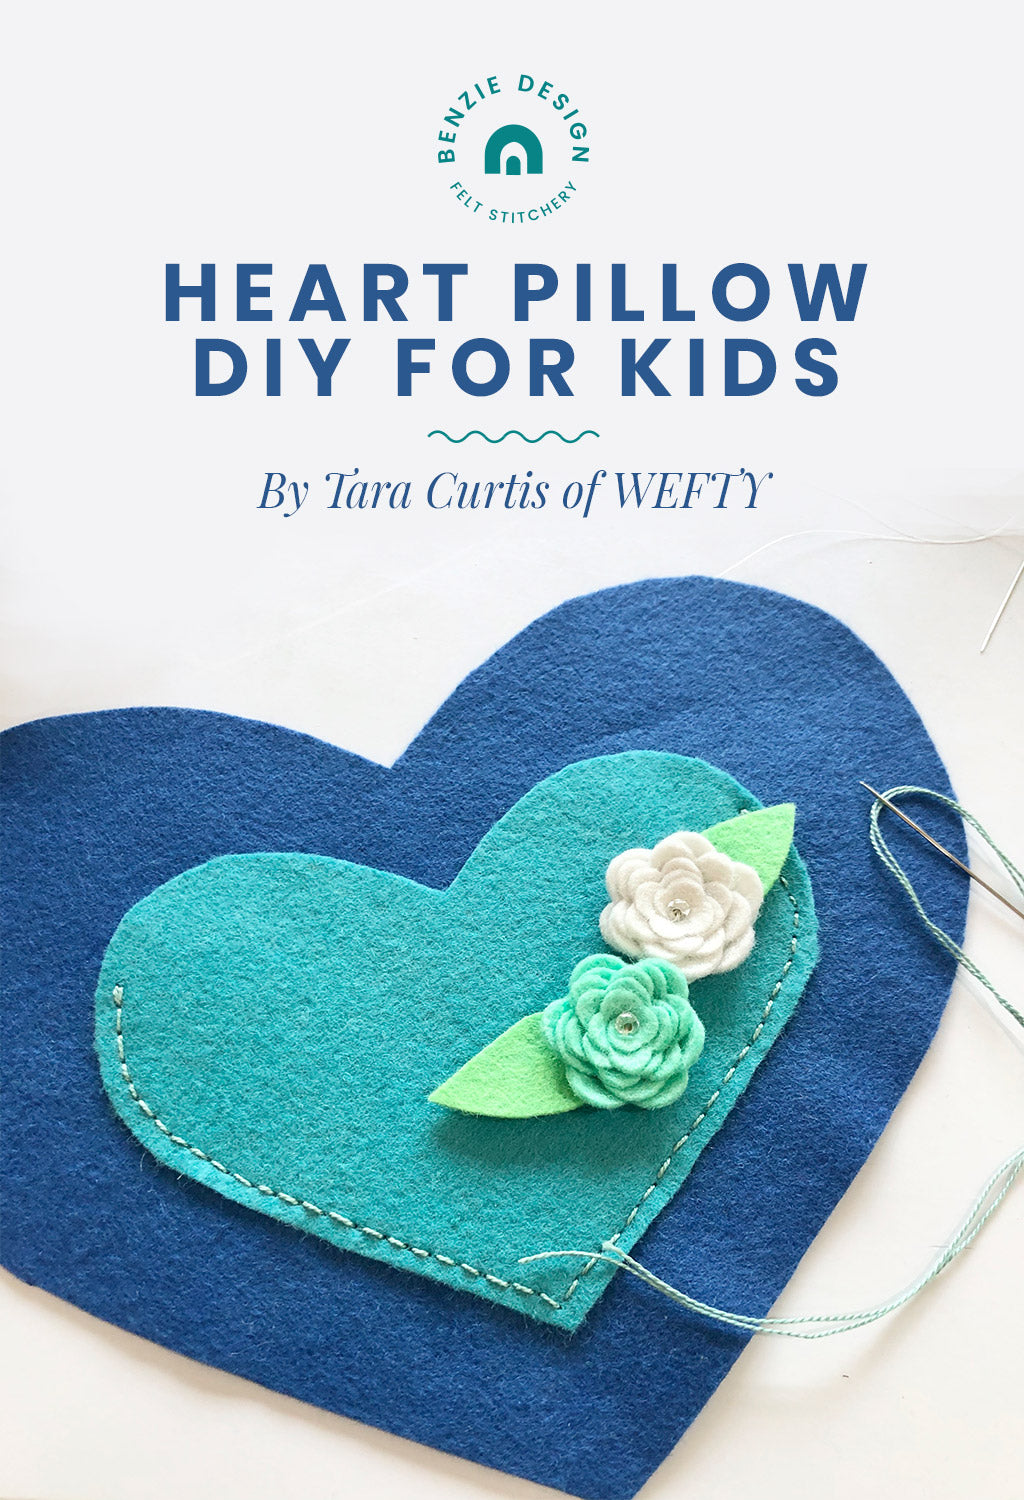 Heart Pillow DIY for Kids